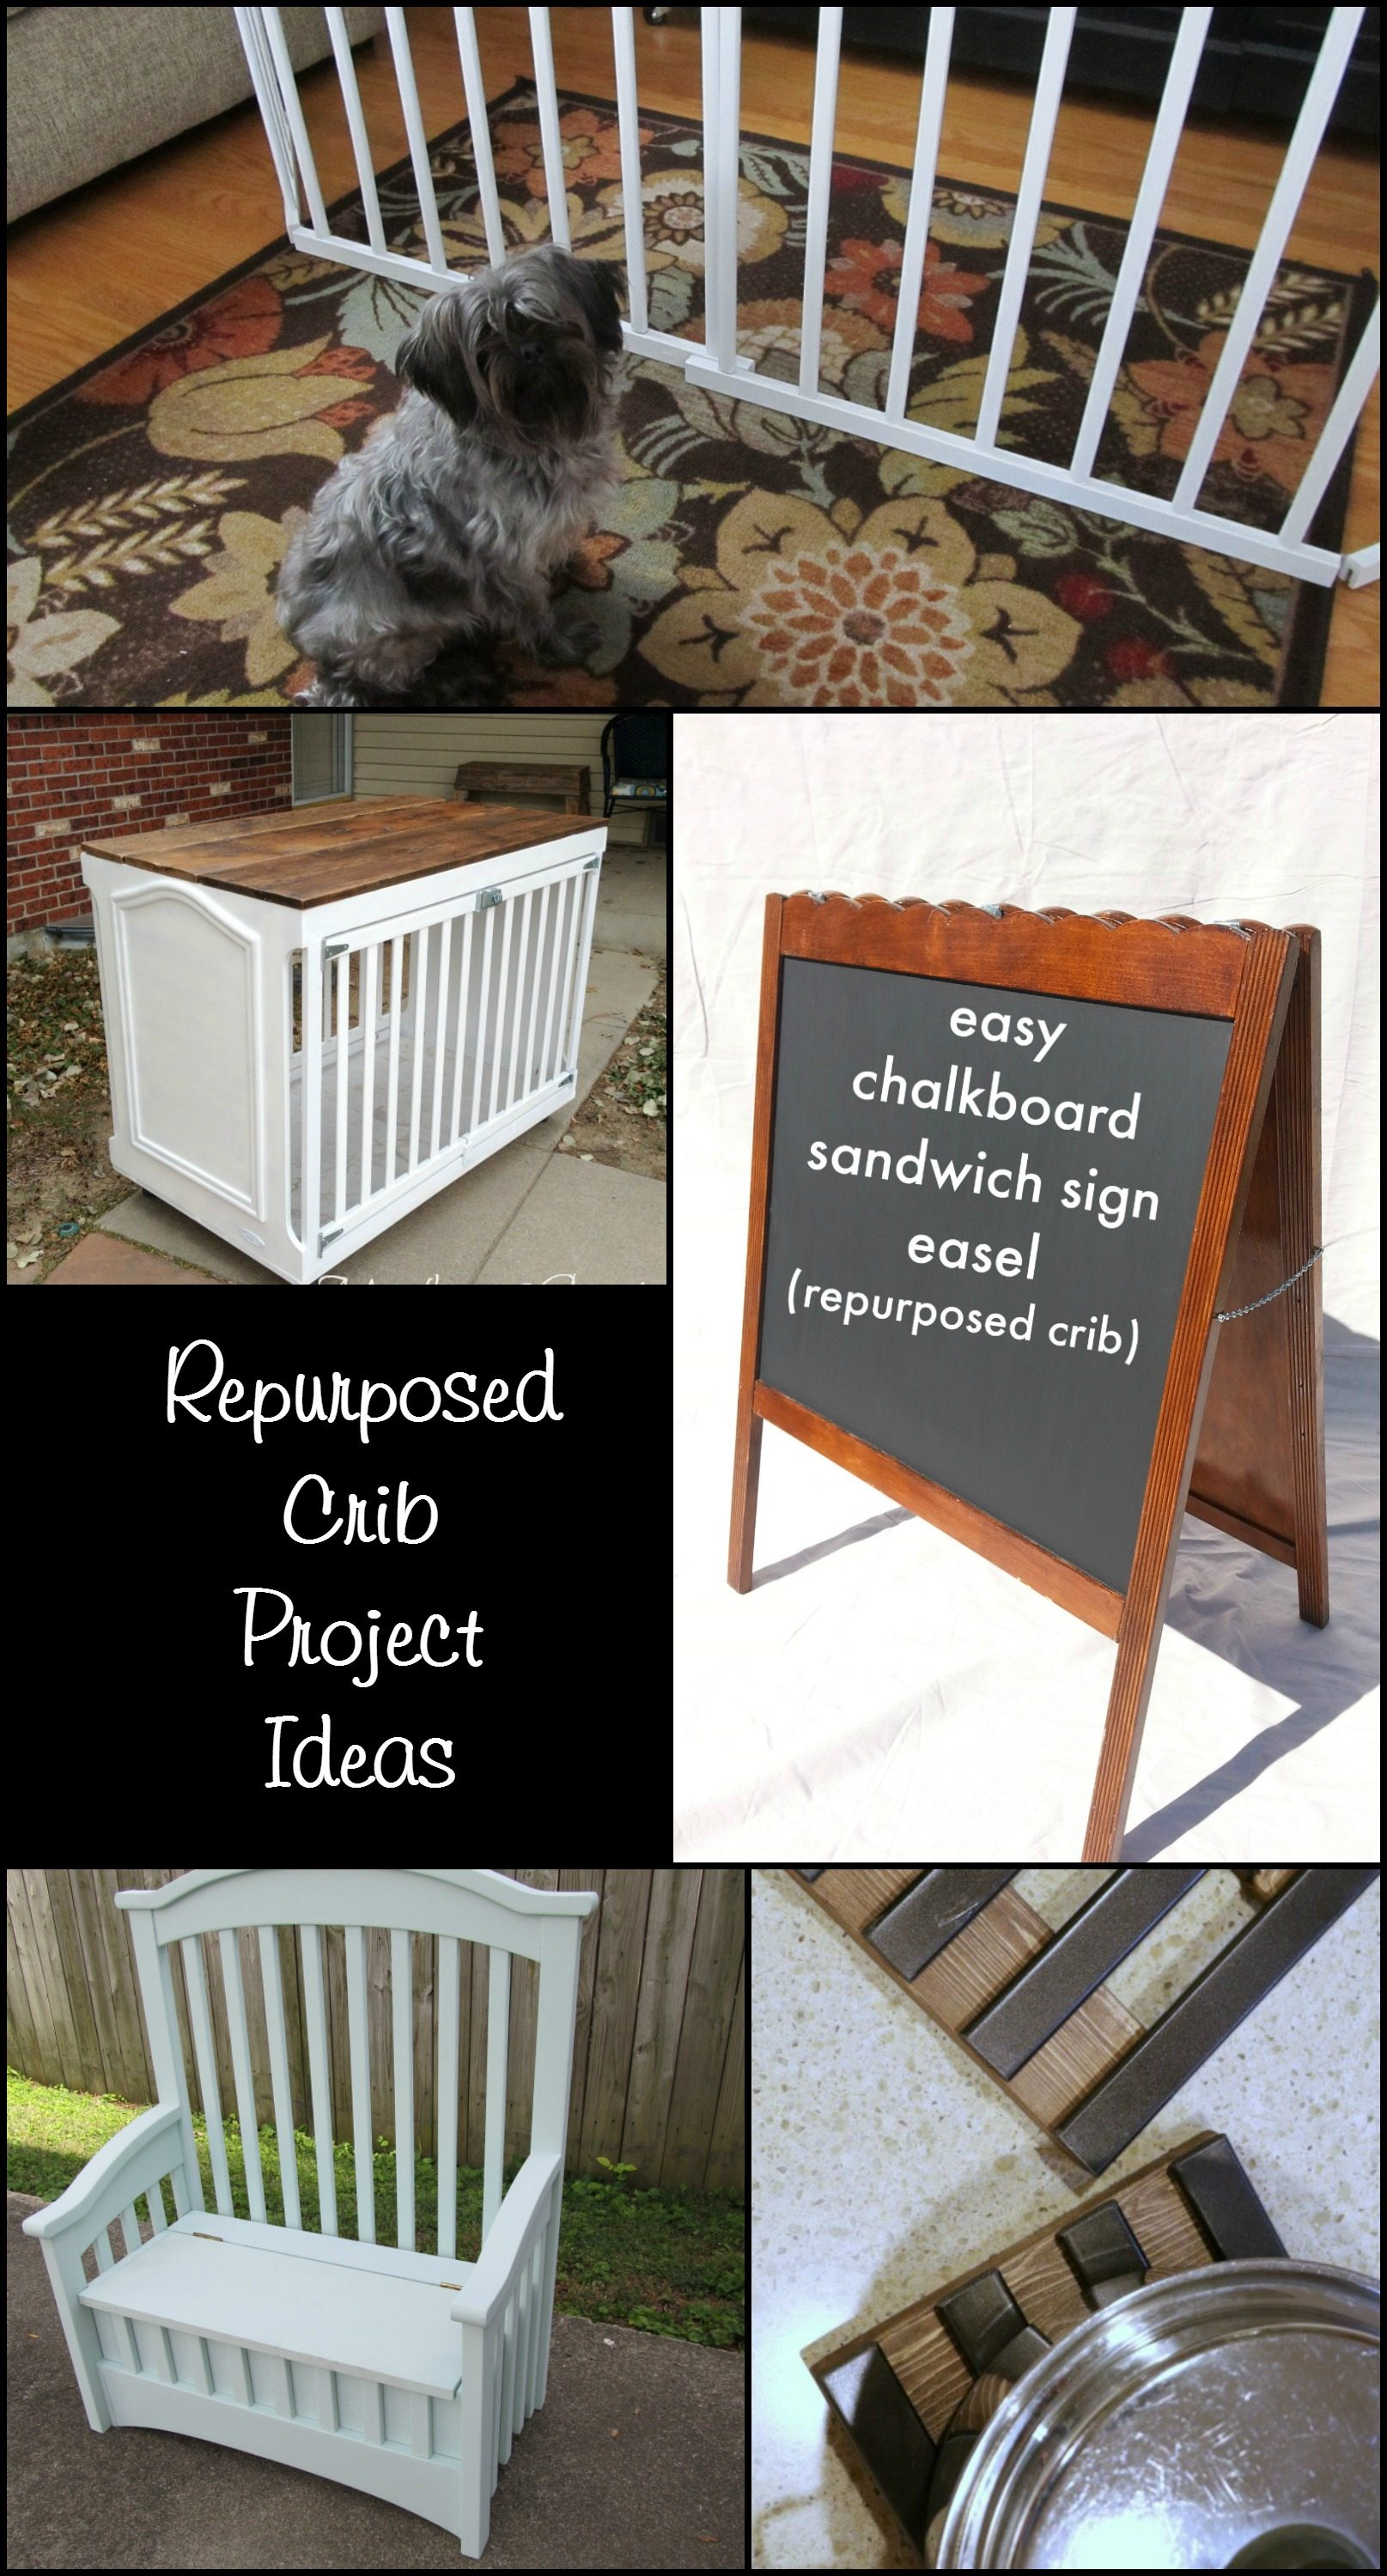 Repurposed chair ideas my repurposed life -  repurposed crib project ideas with you cribs are readily available in numerous places my favorite place to find old cribs is on the side of the road